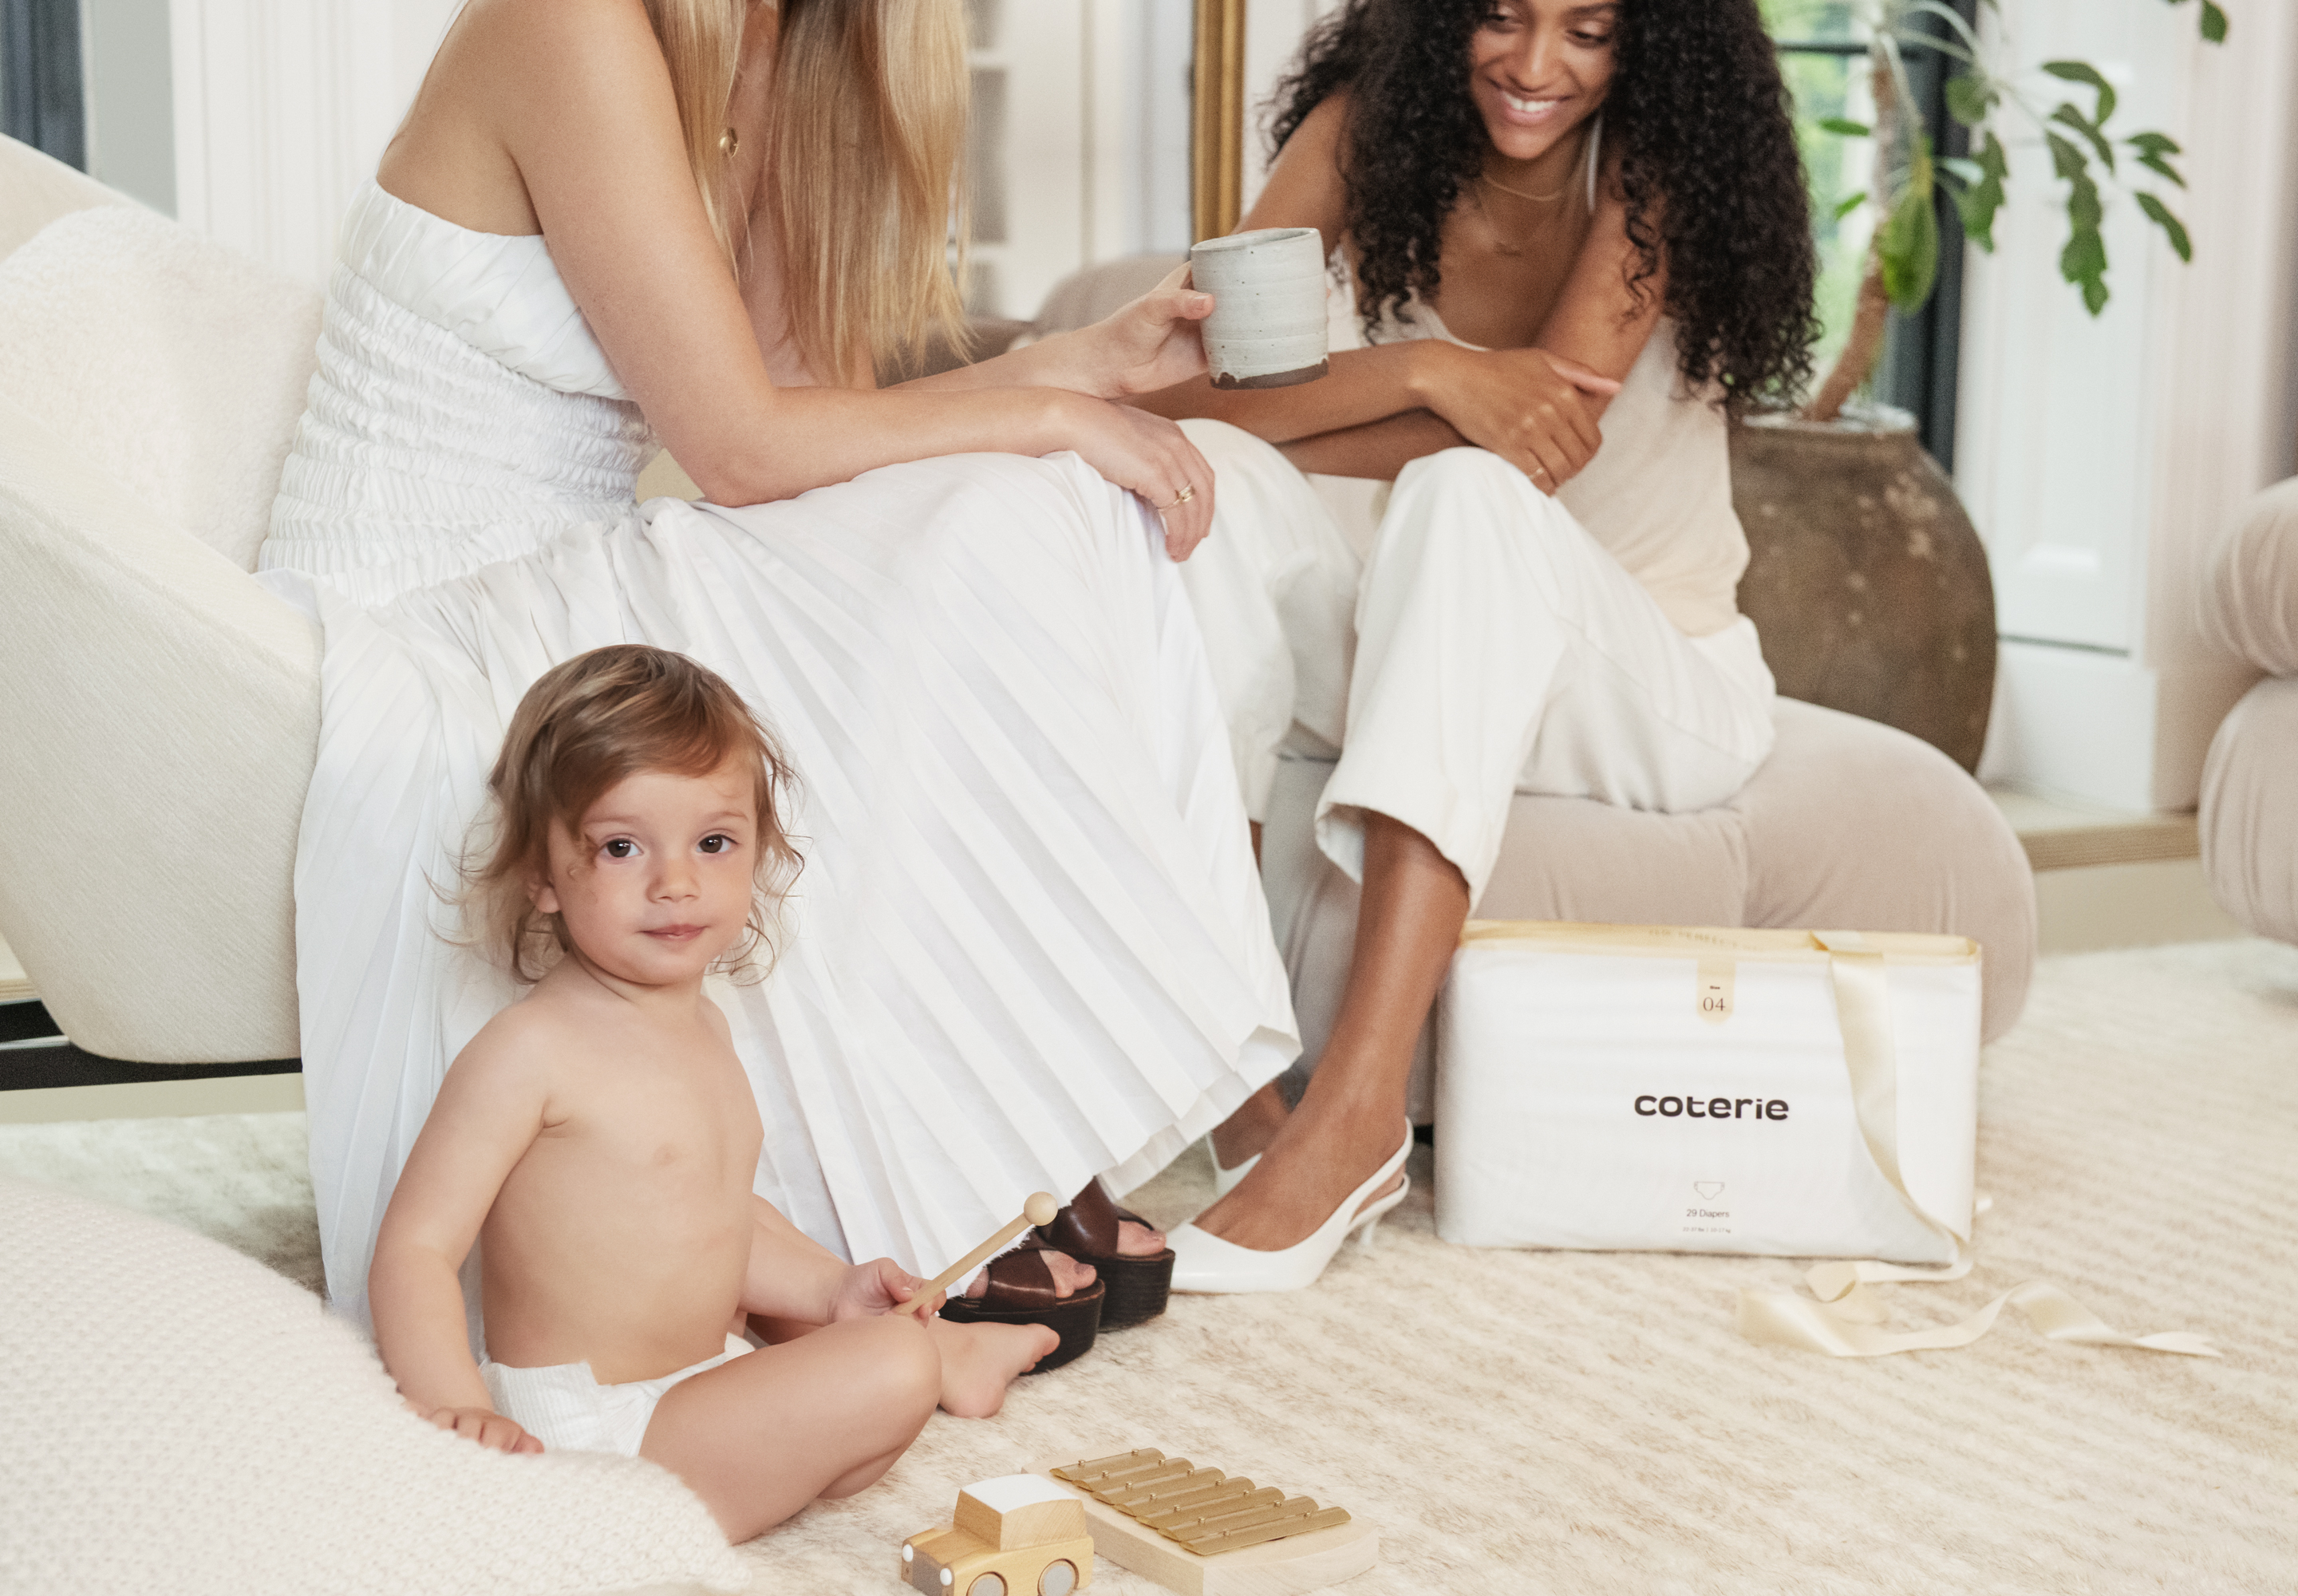 Mom's sipping coffee with their baby and a pack of Coterie diapers